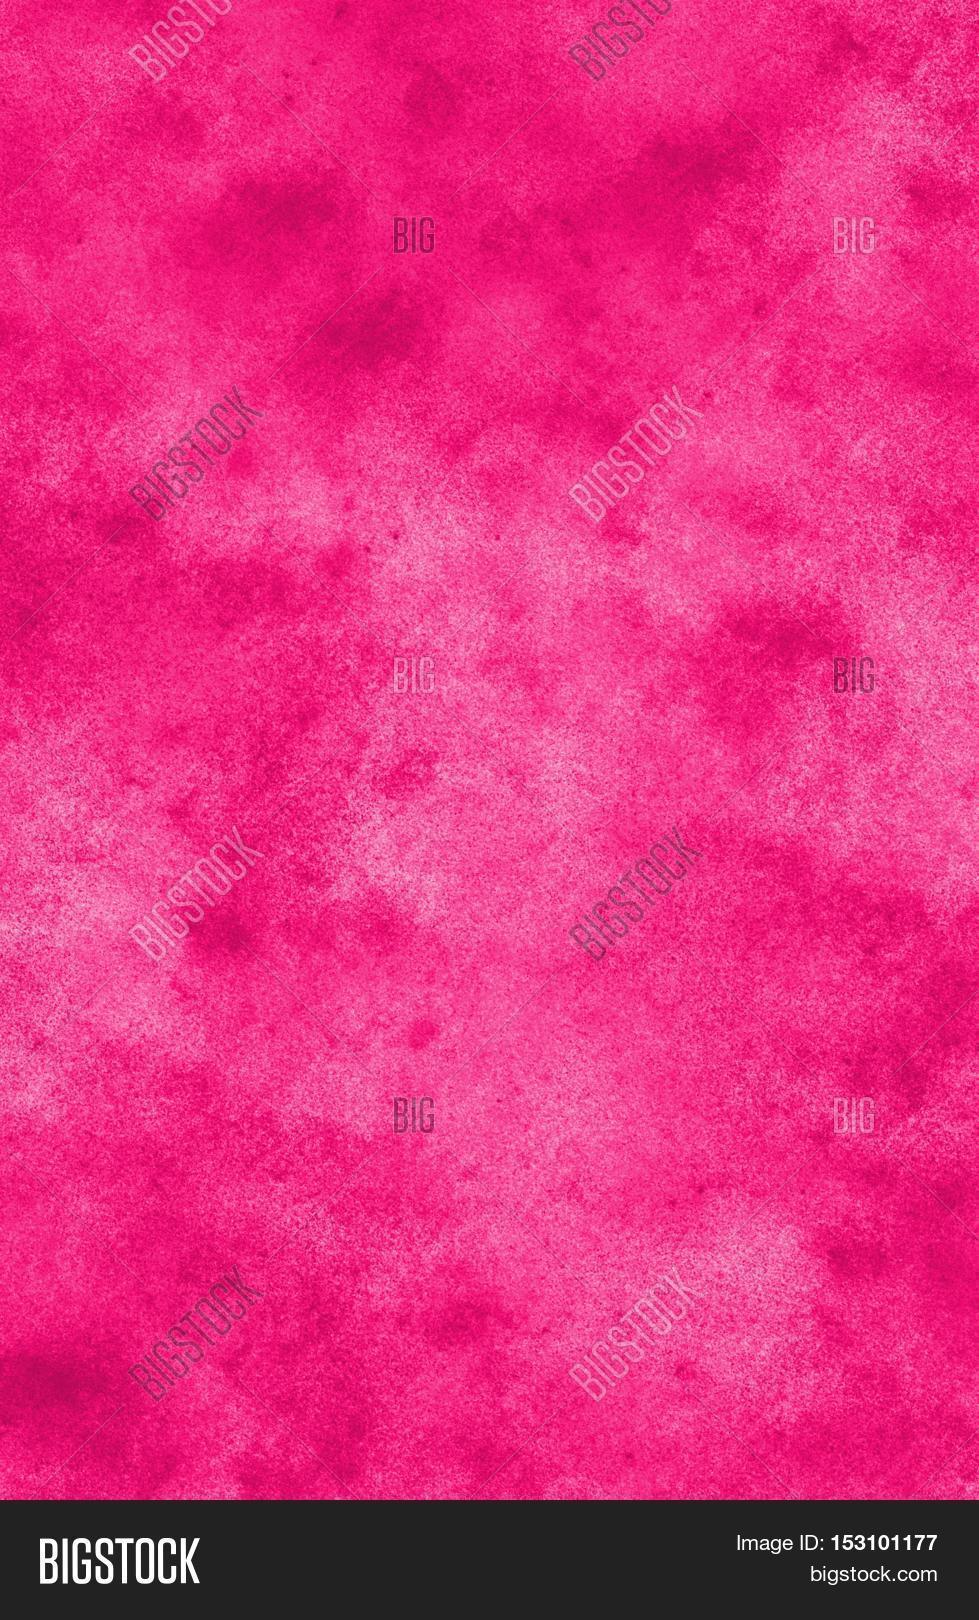 Hot Pink Background Image Photo Free Trial Bigstock